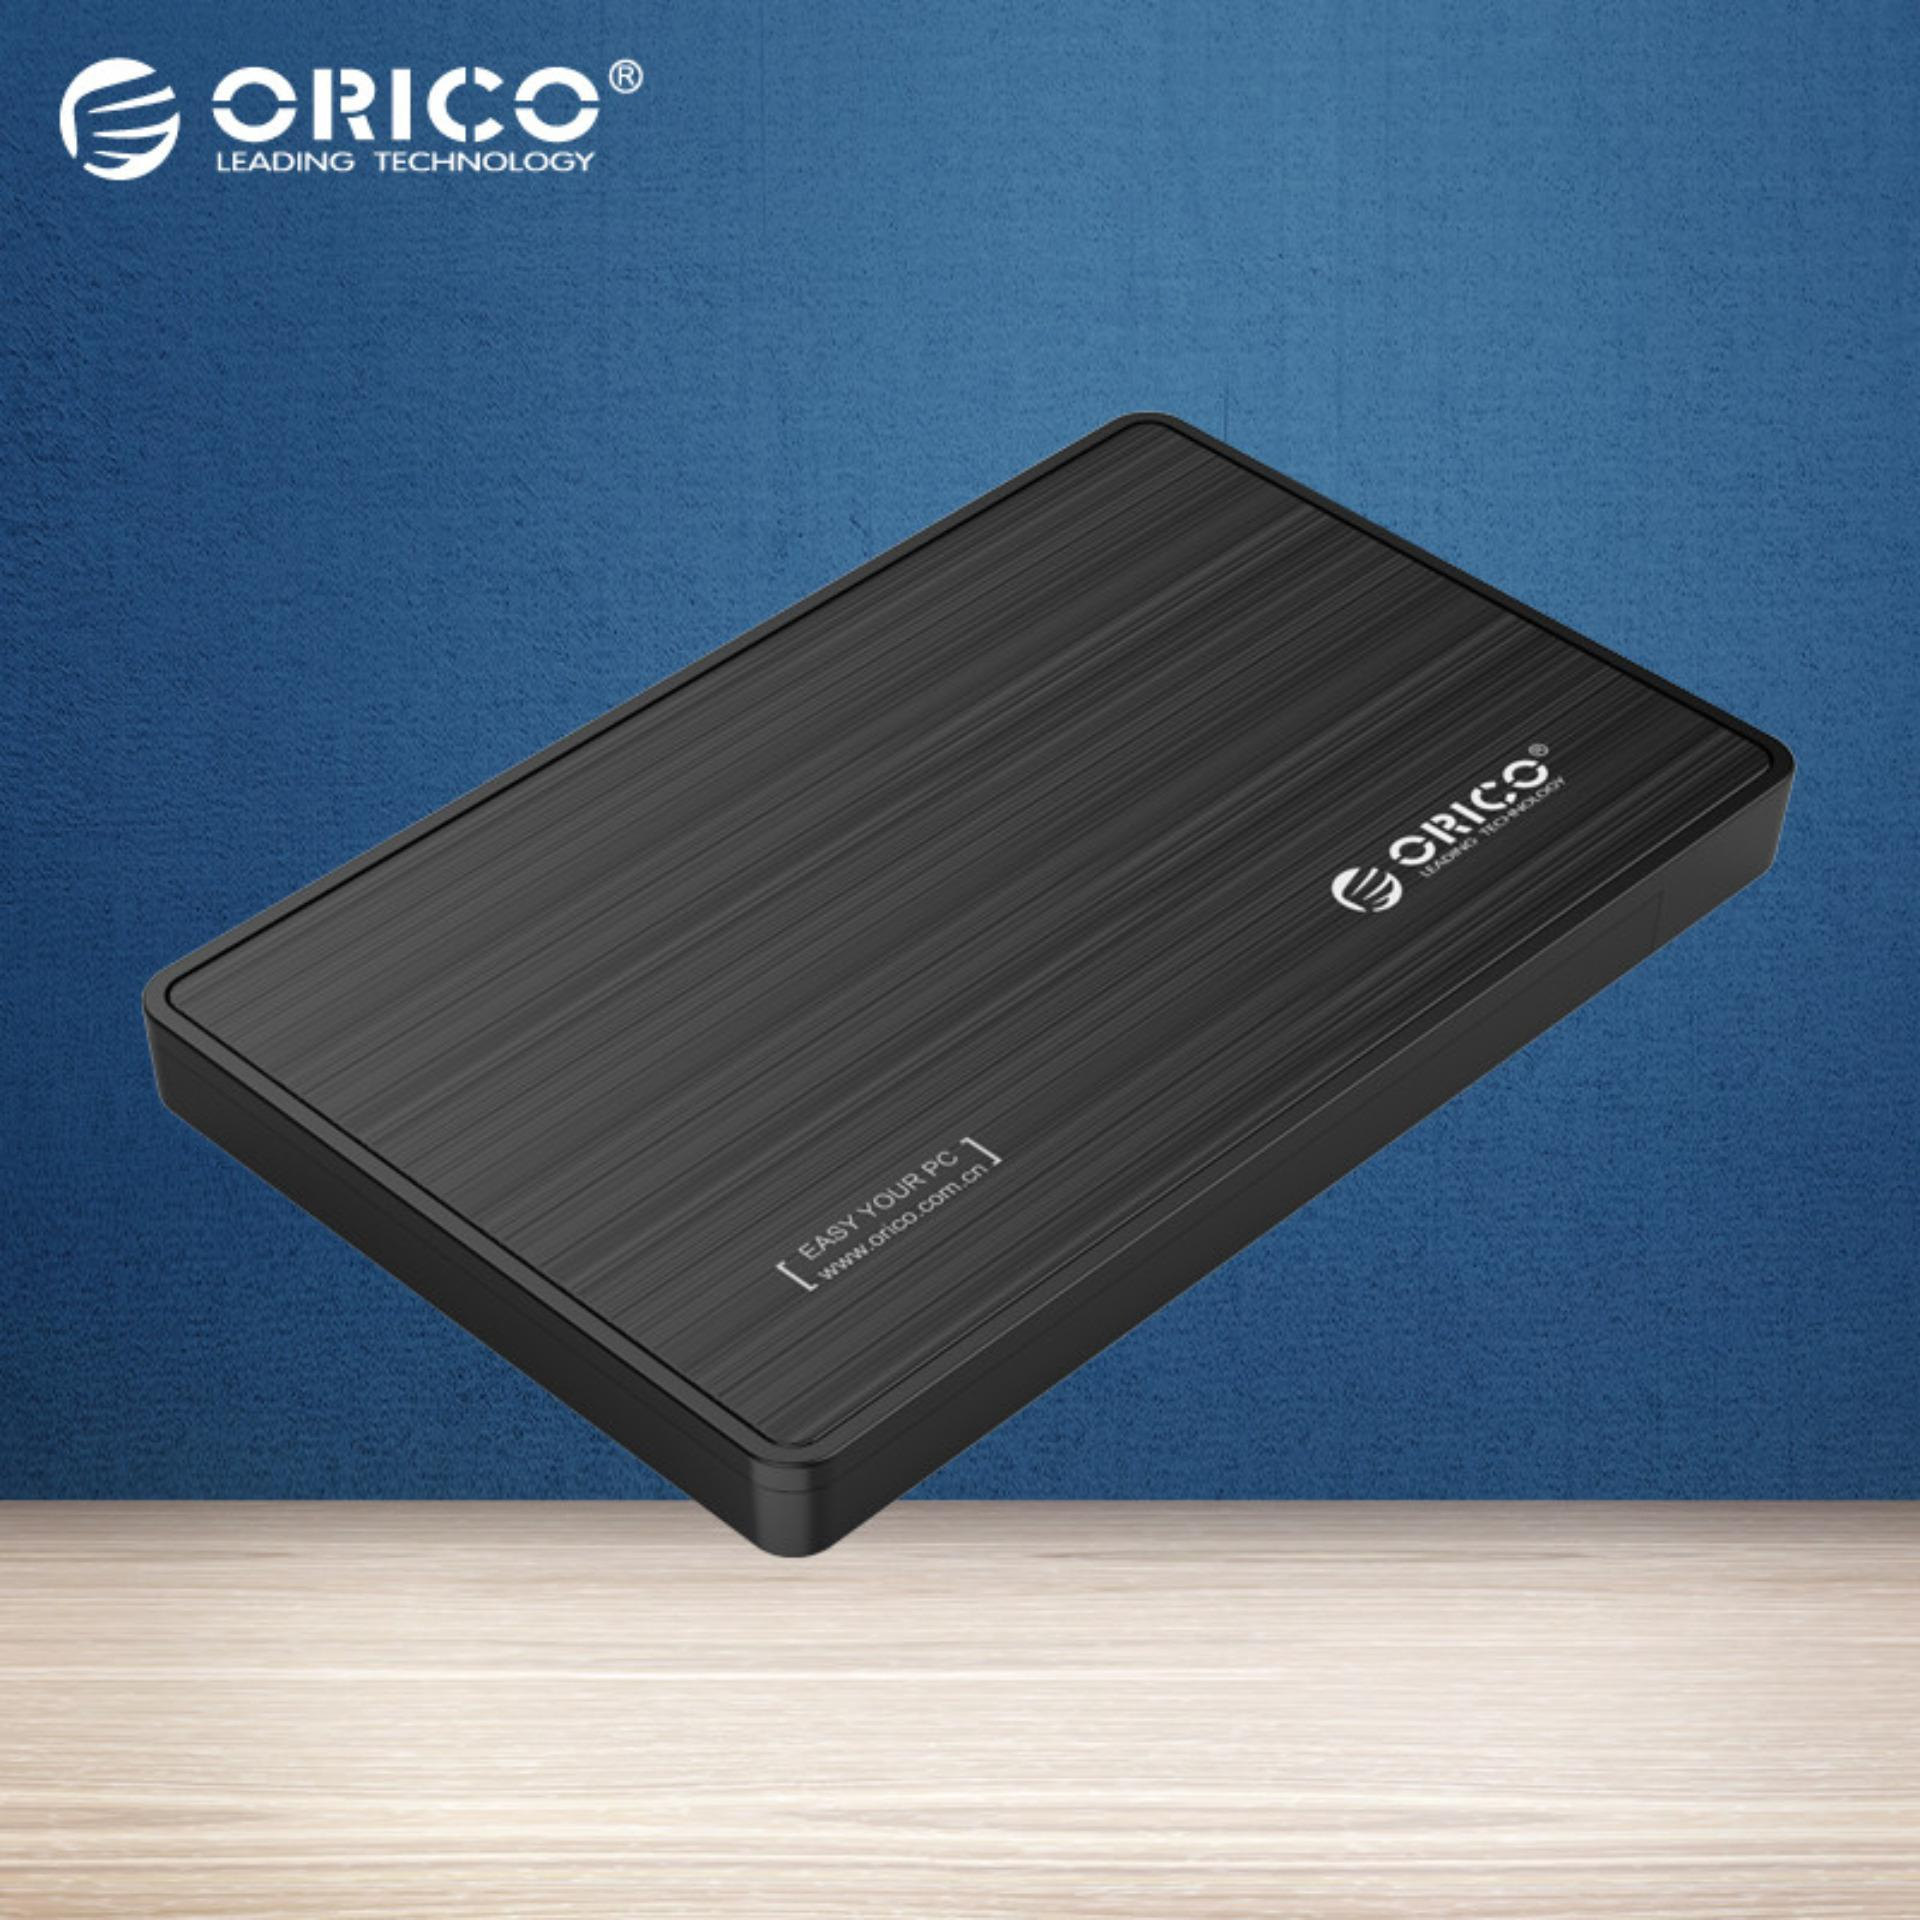 Orico 2588us3 External 25 Hard Disk Drive Ssd Enclosure Case Usb 6228us3 C 2bay Docking Harddisk 30 Black Singapore